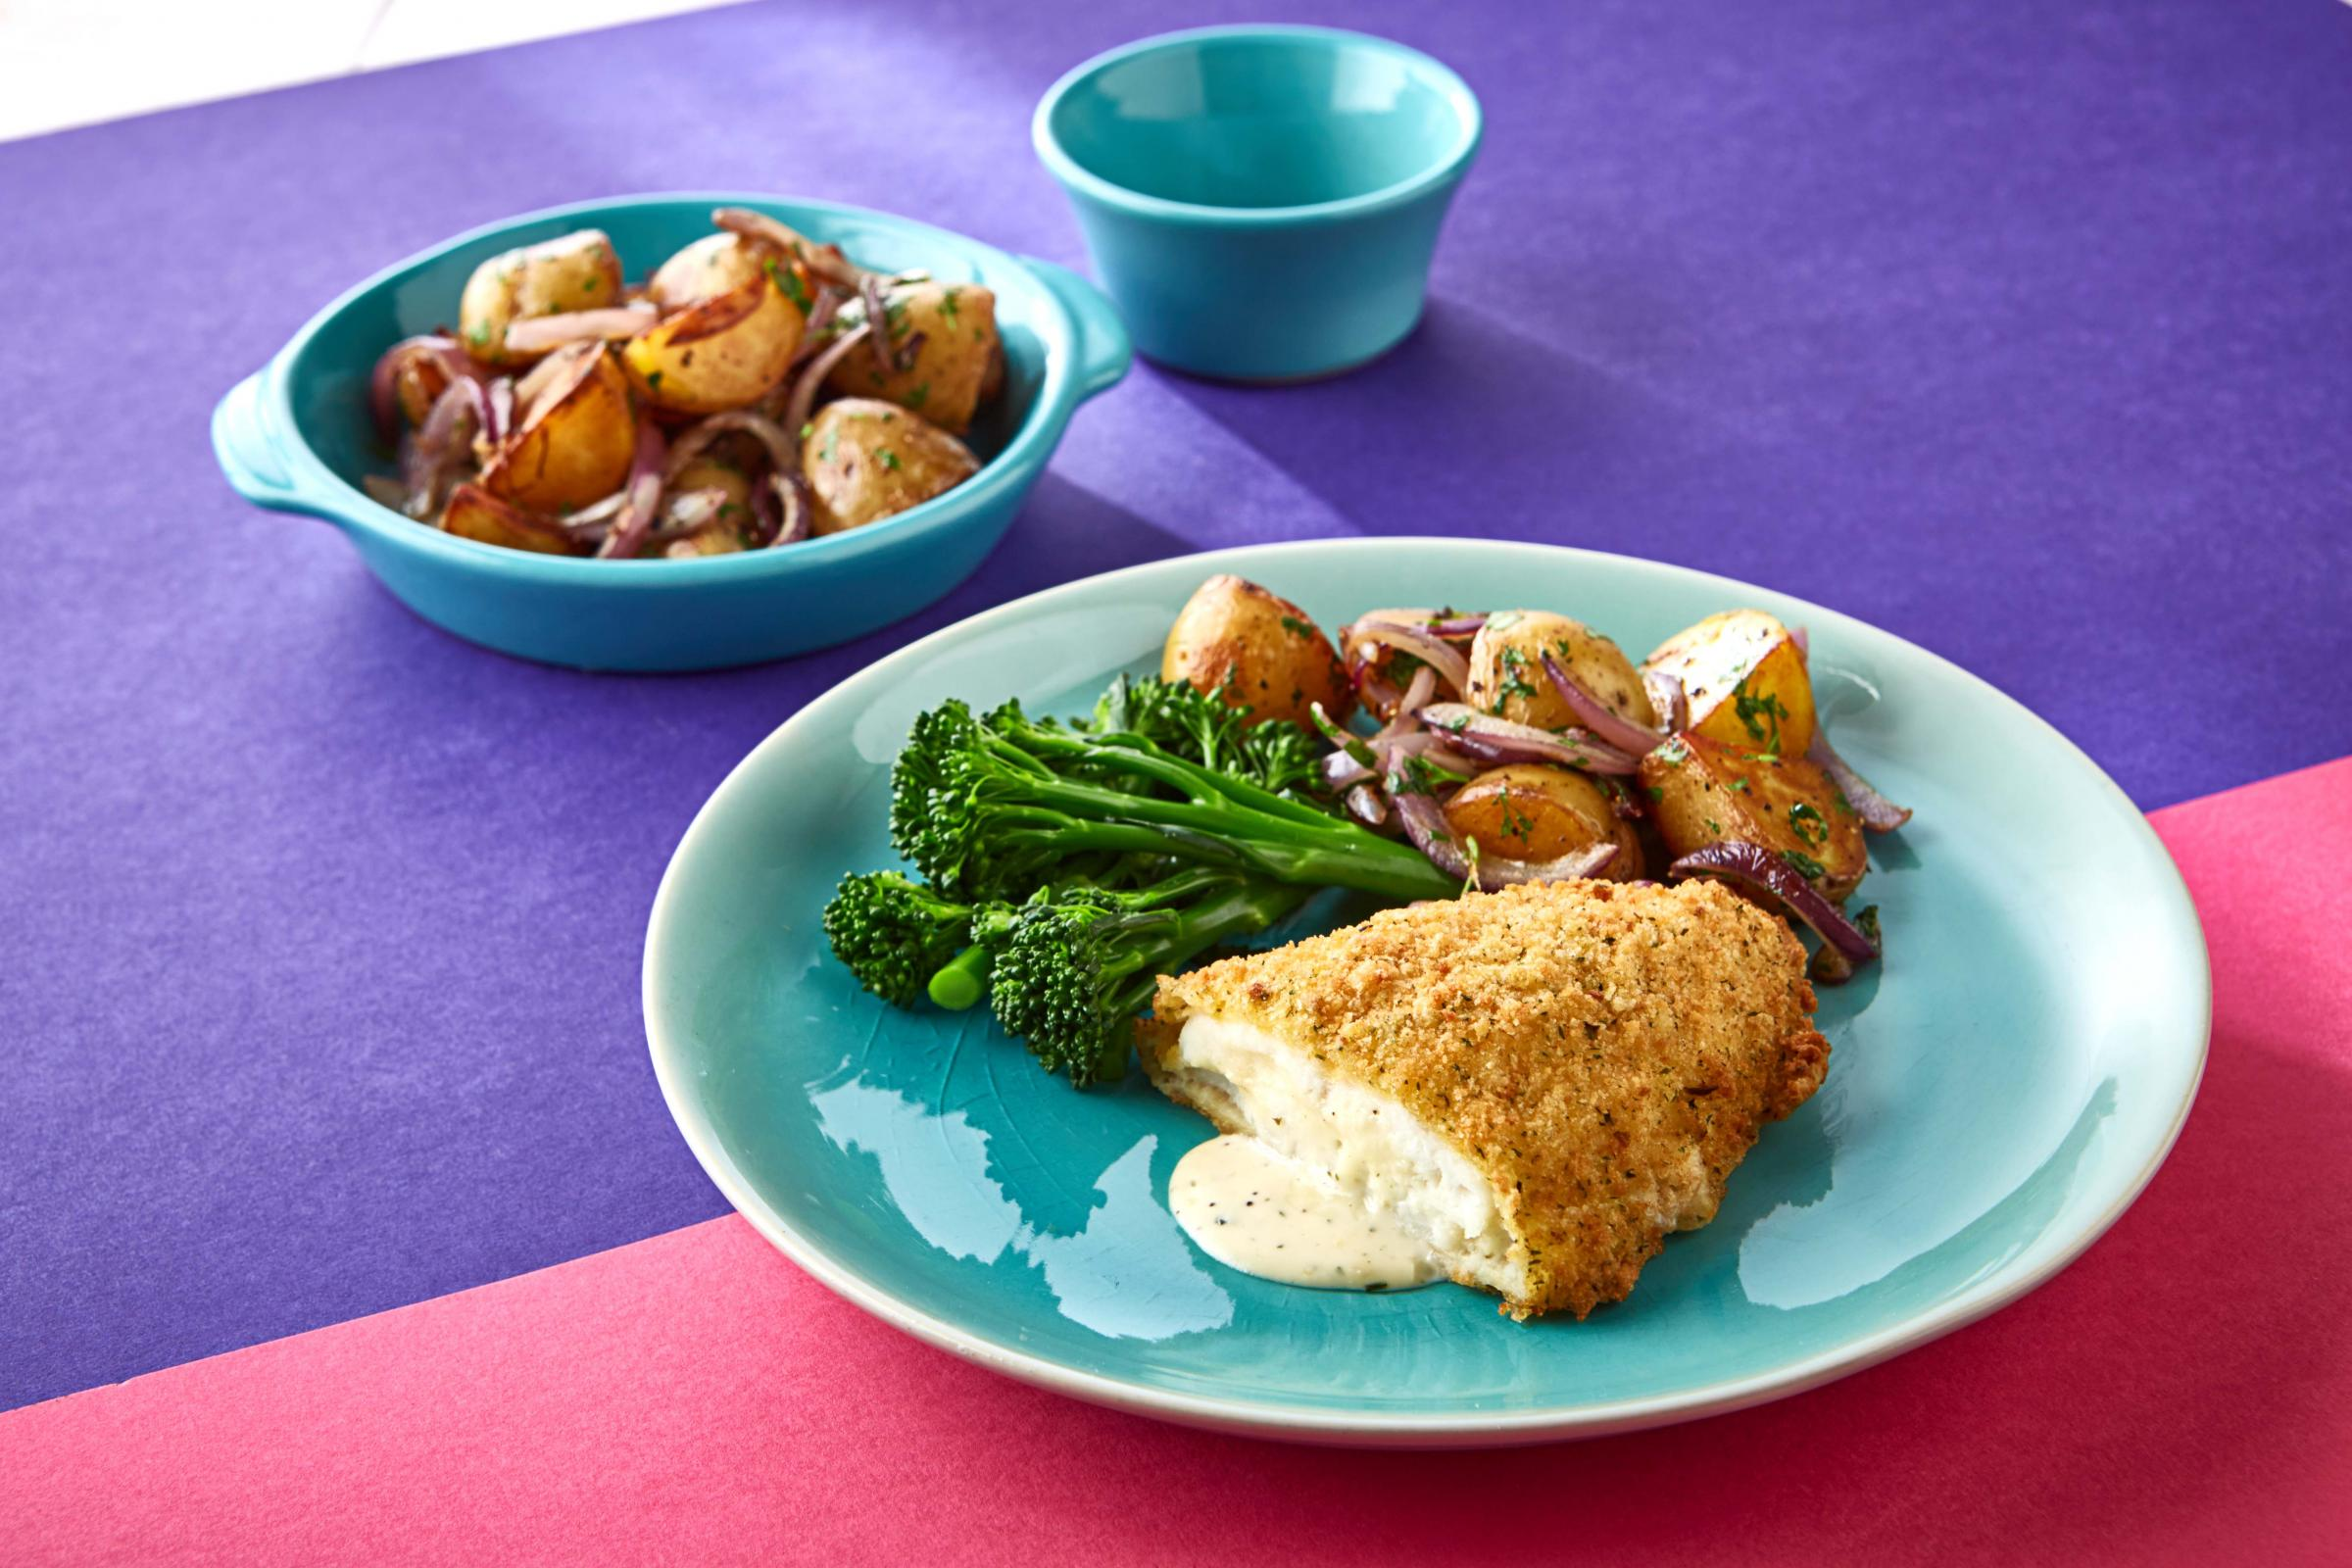 It's fishcakes for all the family as Saucy Fish Co. launches flavoursome new range